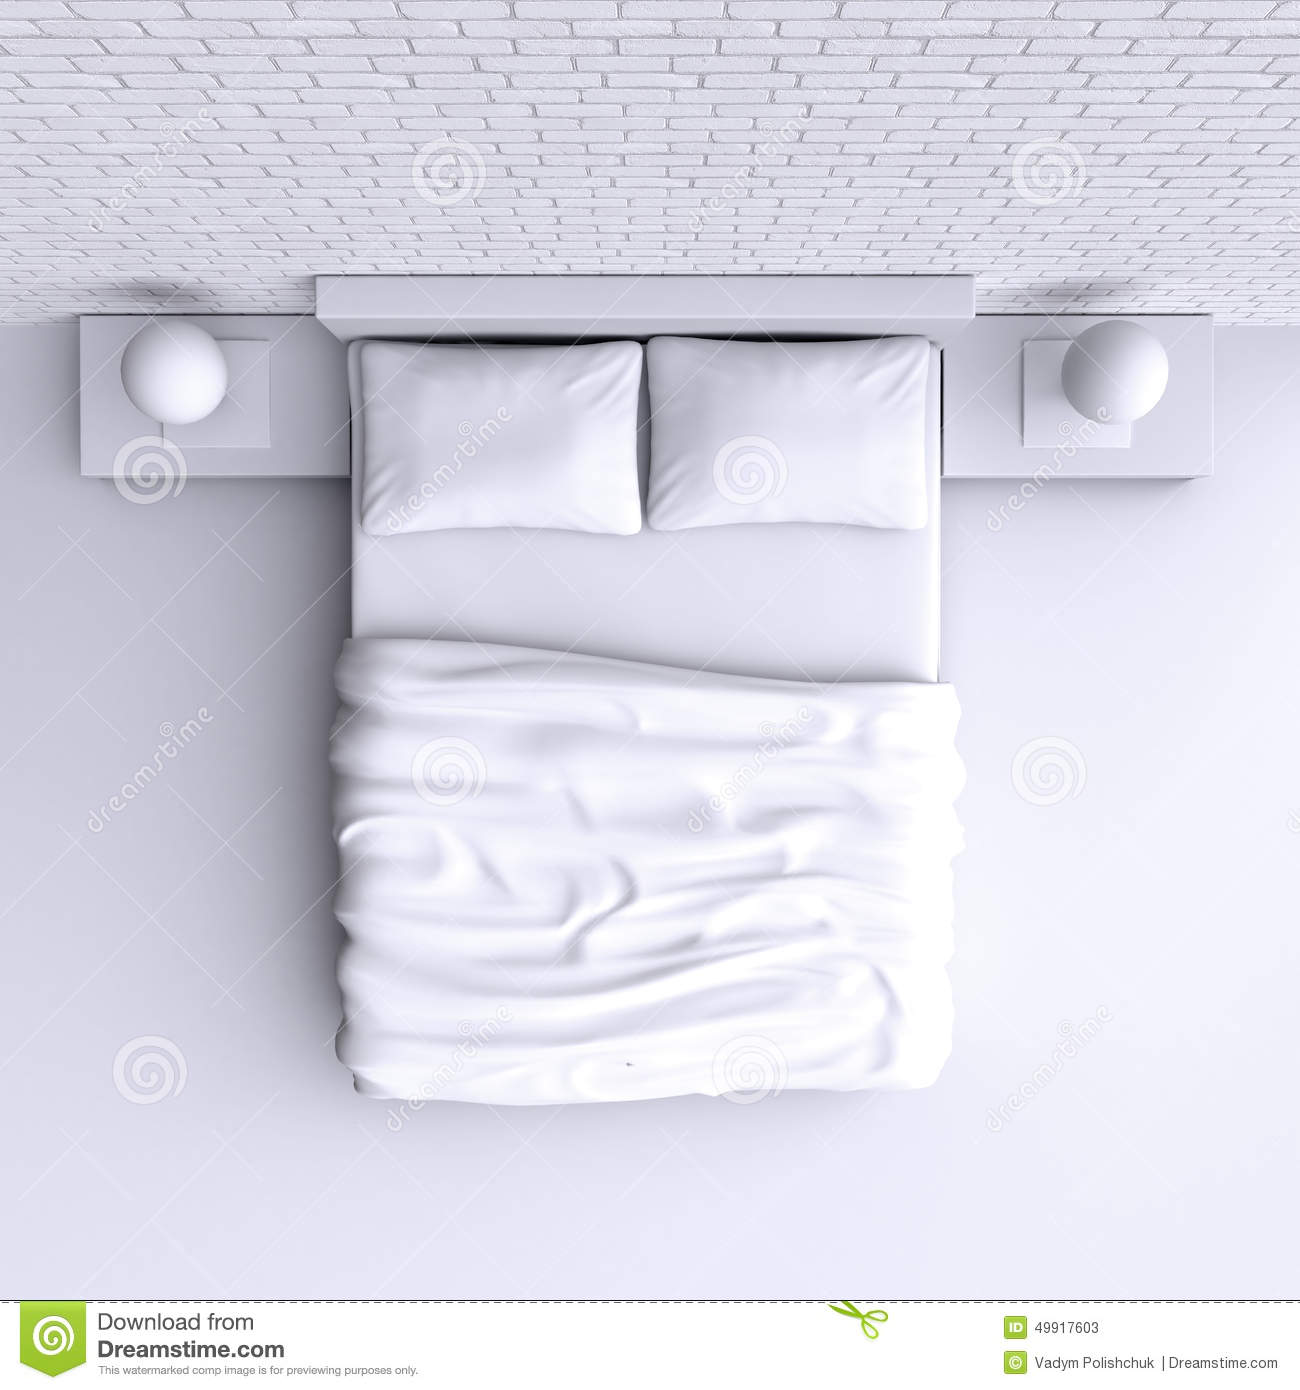 Bed With Pillows And A Blanket In The Corner Room, 3d